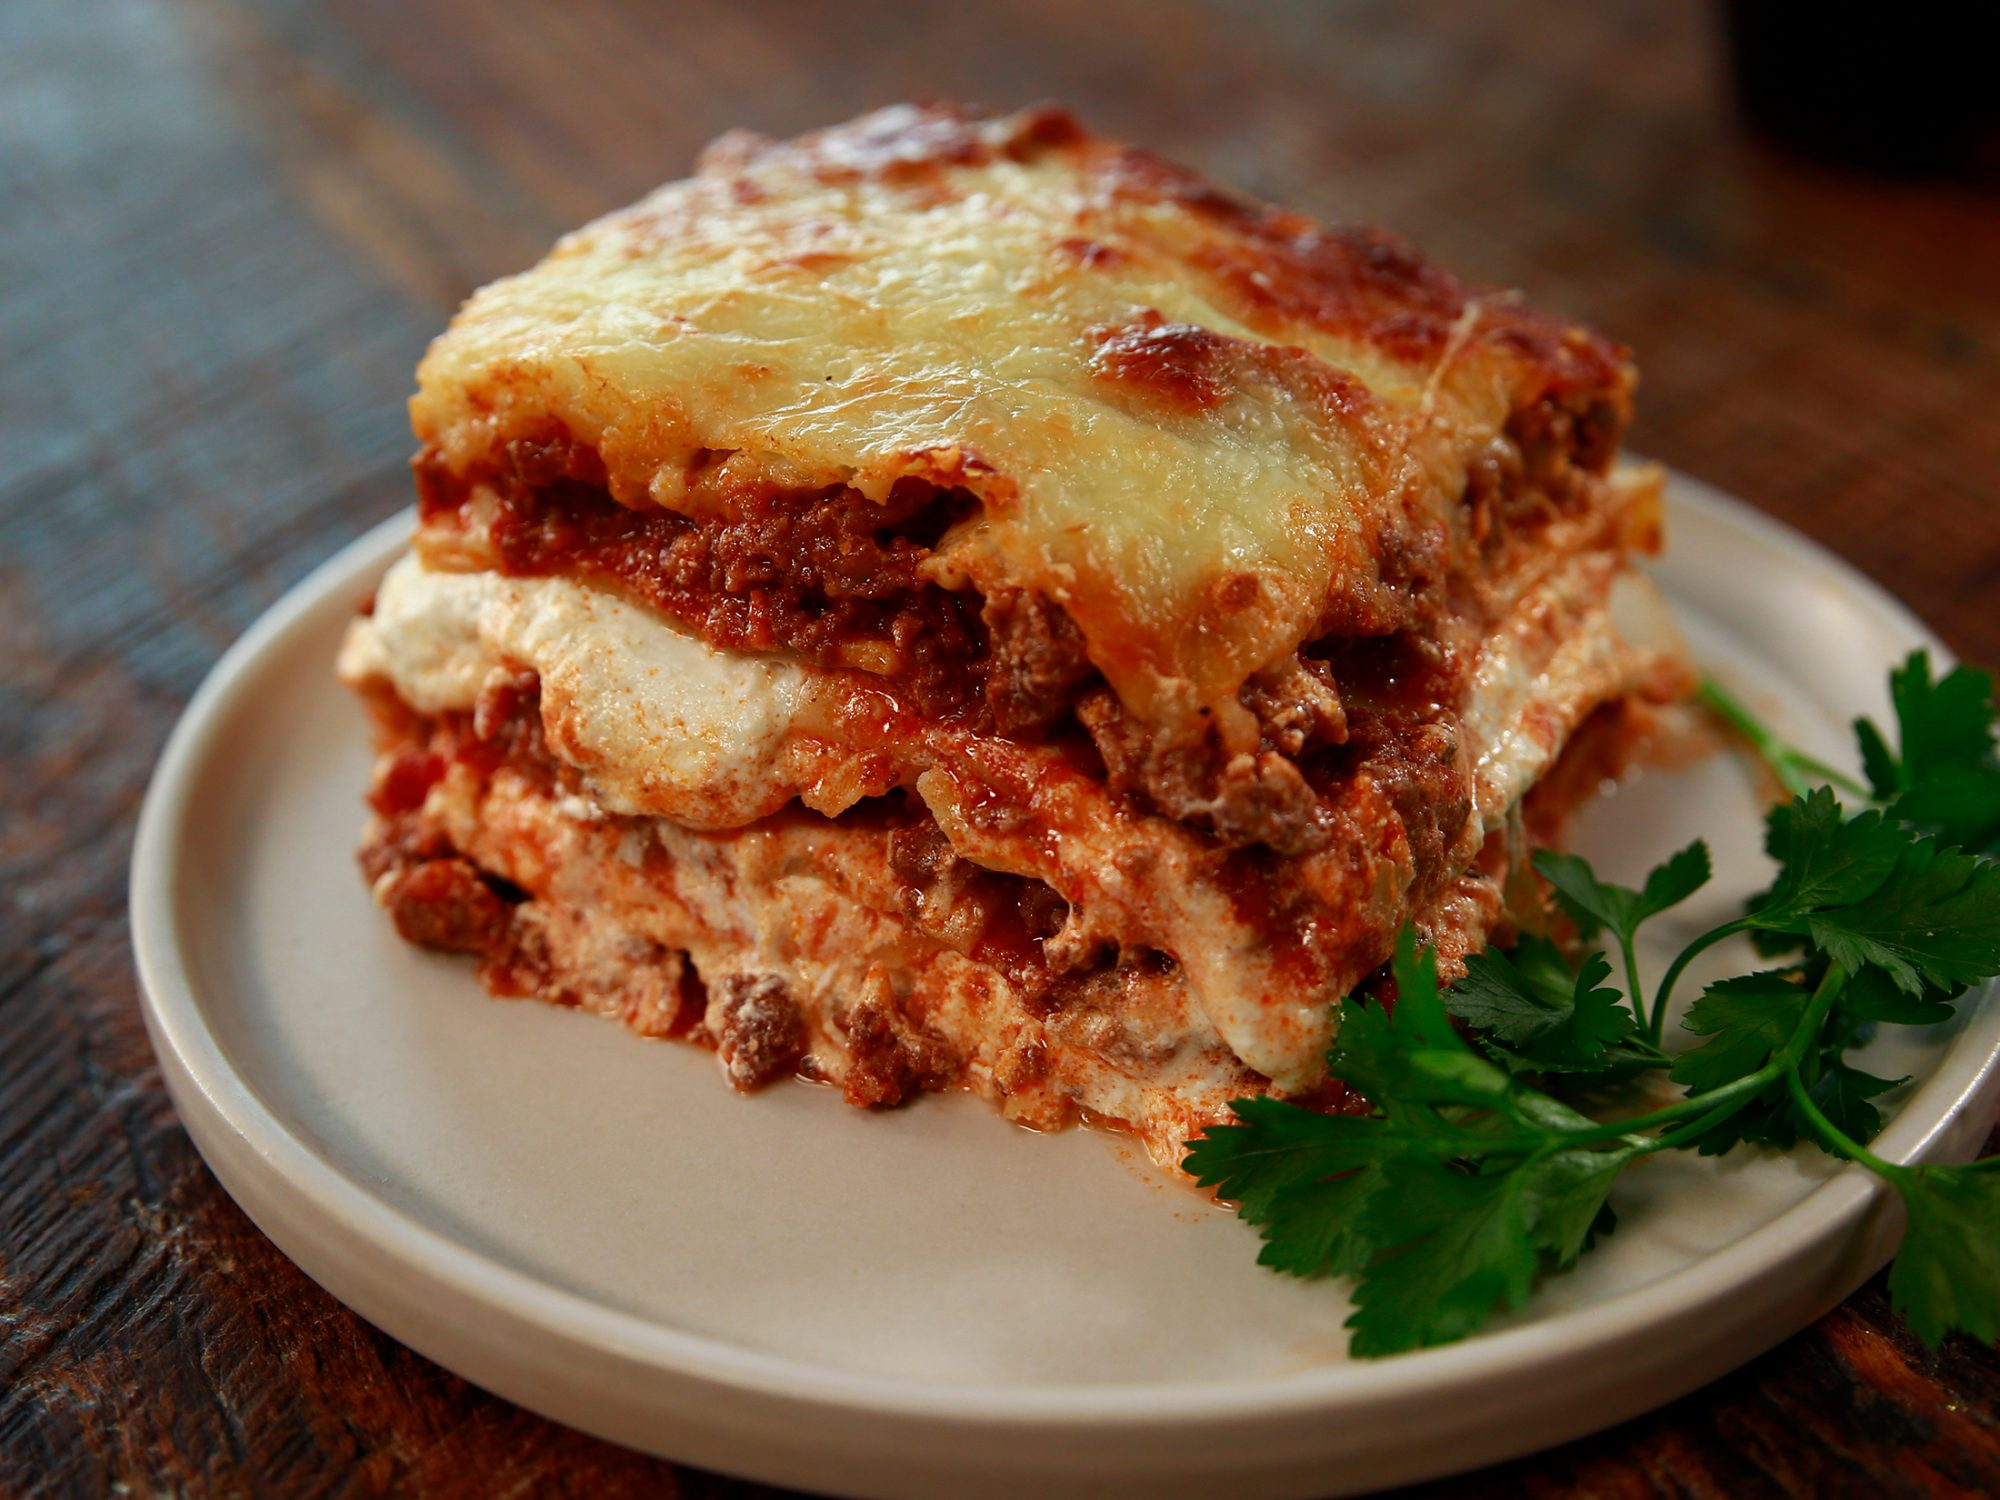 Paris Hilton's Lasagna (as interpreted by Nicole McLaughlin) image